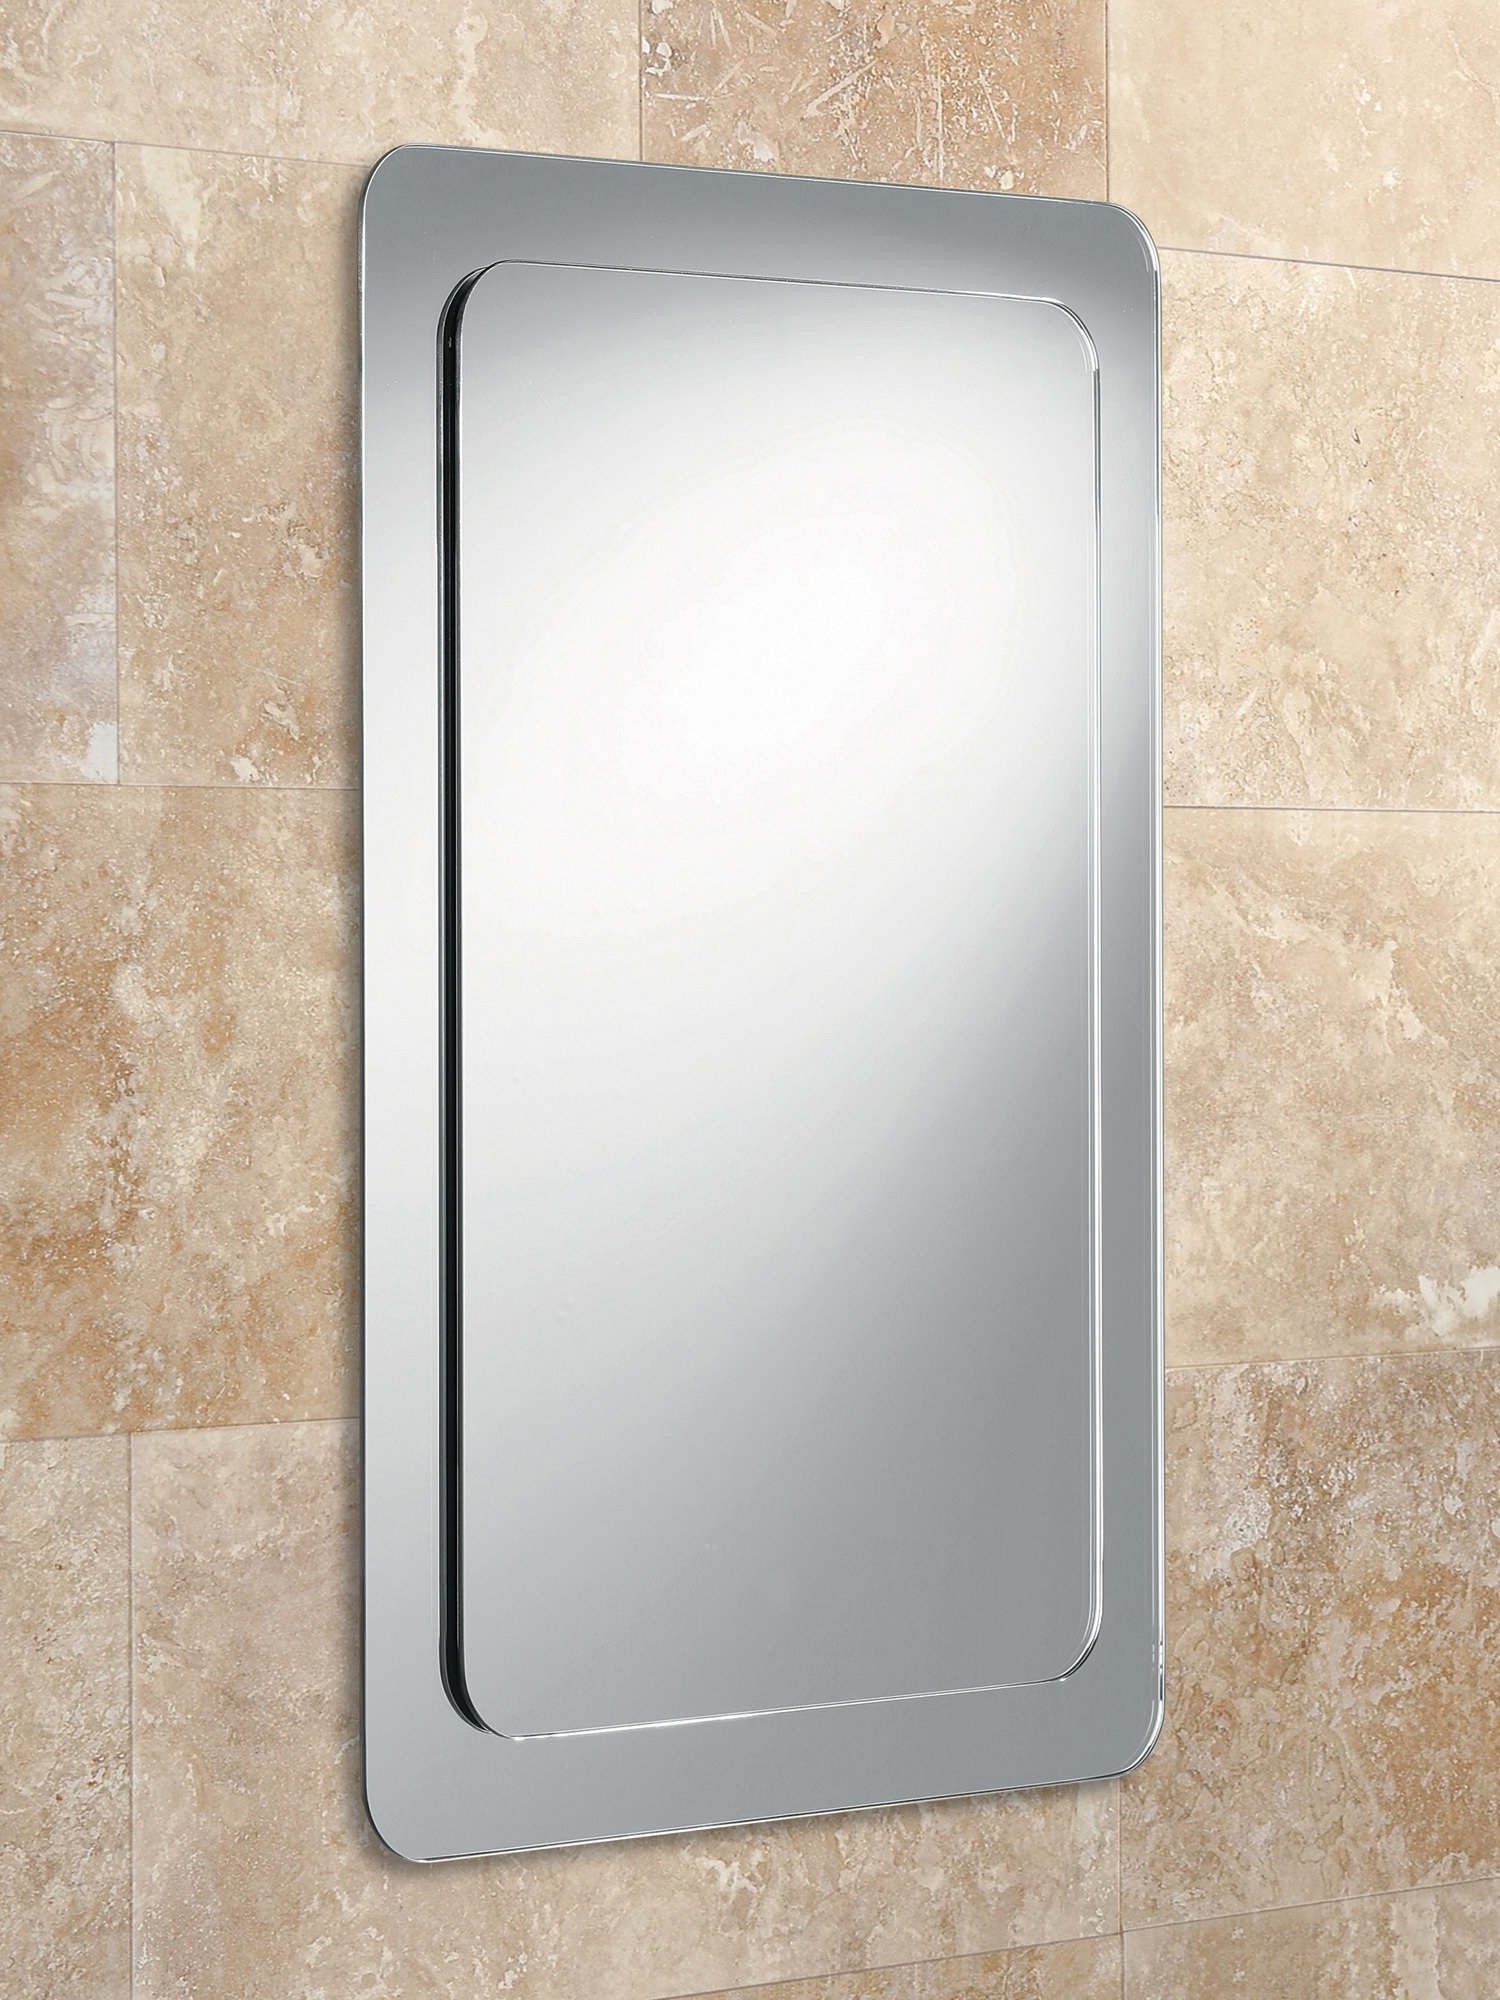 Bevelled Bathroom Mirror Hib Almo Bevelled Mirror On Mirror With Rounded Corners 63210795